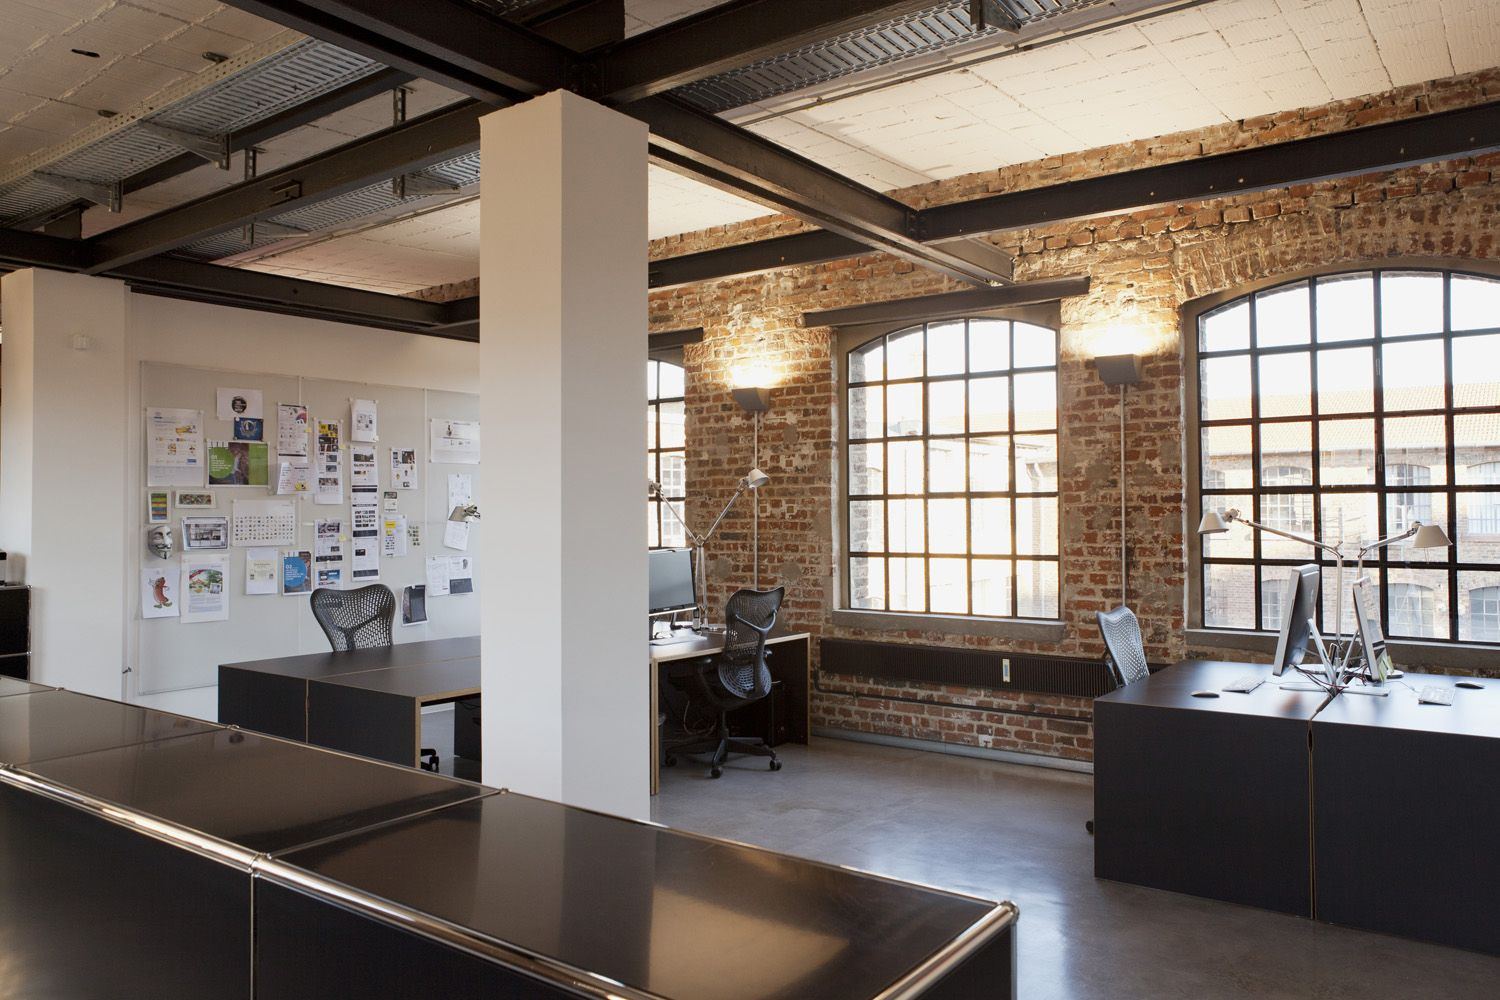 Convecto Agency Workspace In Offenbach Germany Creative Workspace Home Decor Work Space